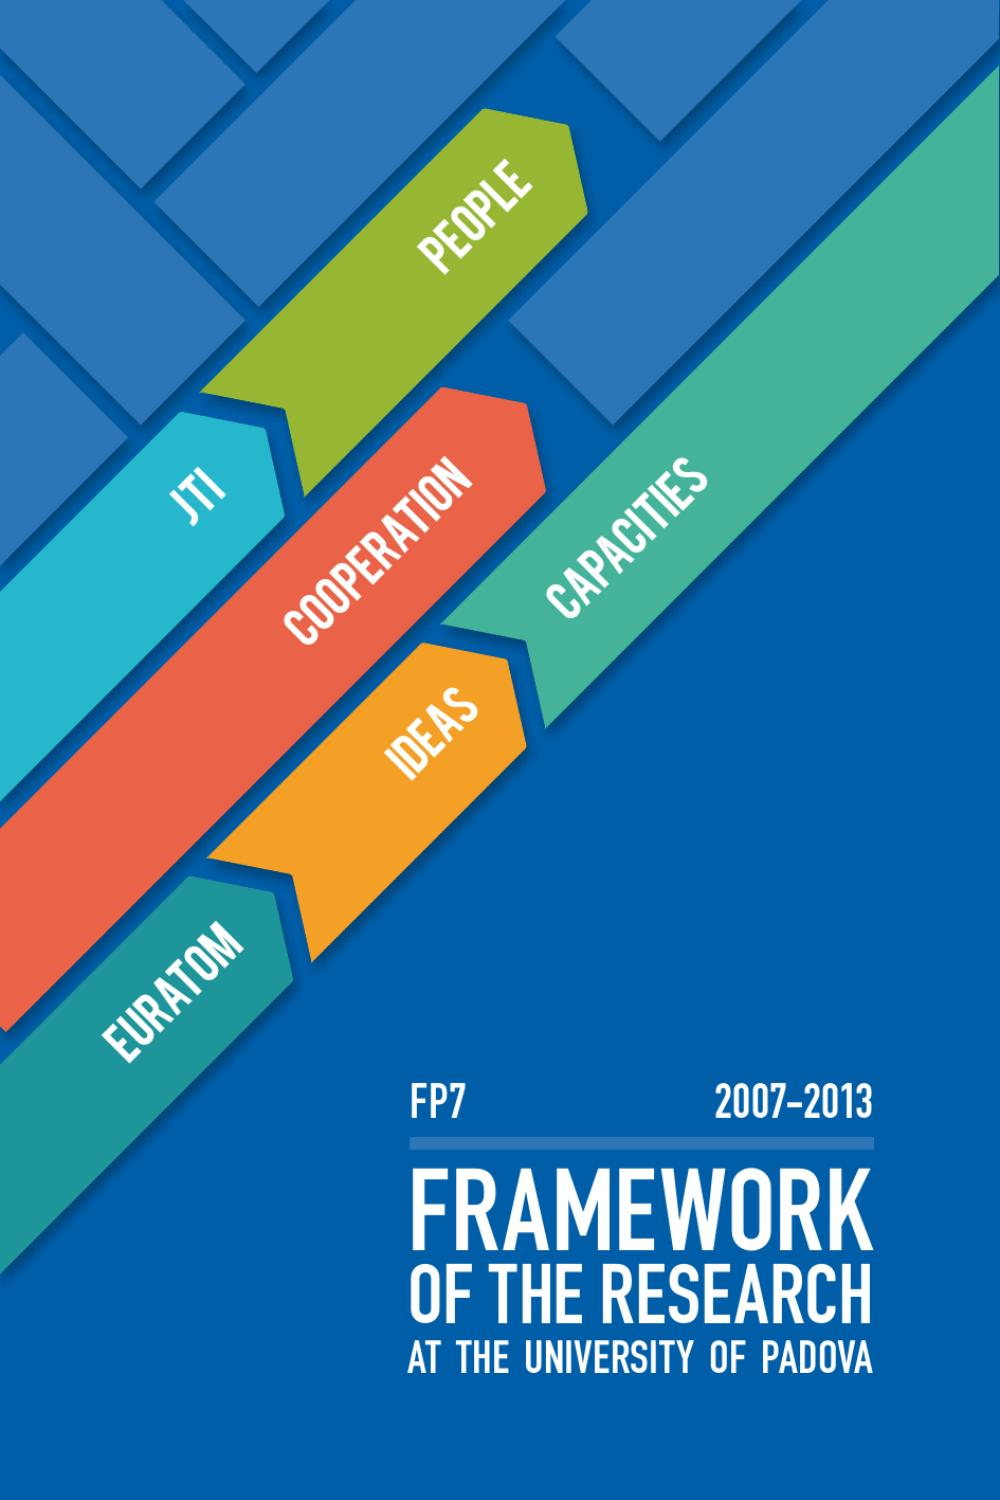 FRAMEWORK OF THE RESEARCH at the University of Padova by università ...